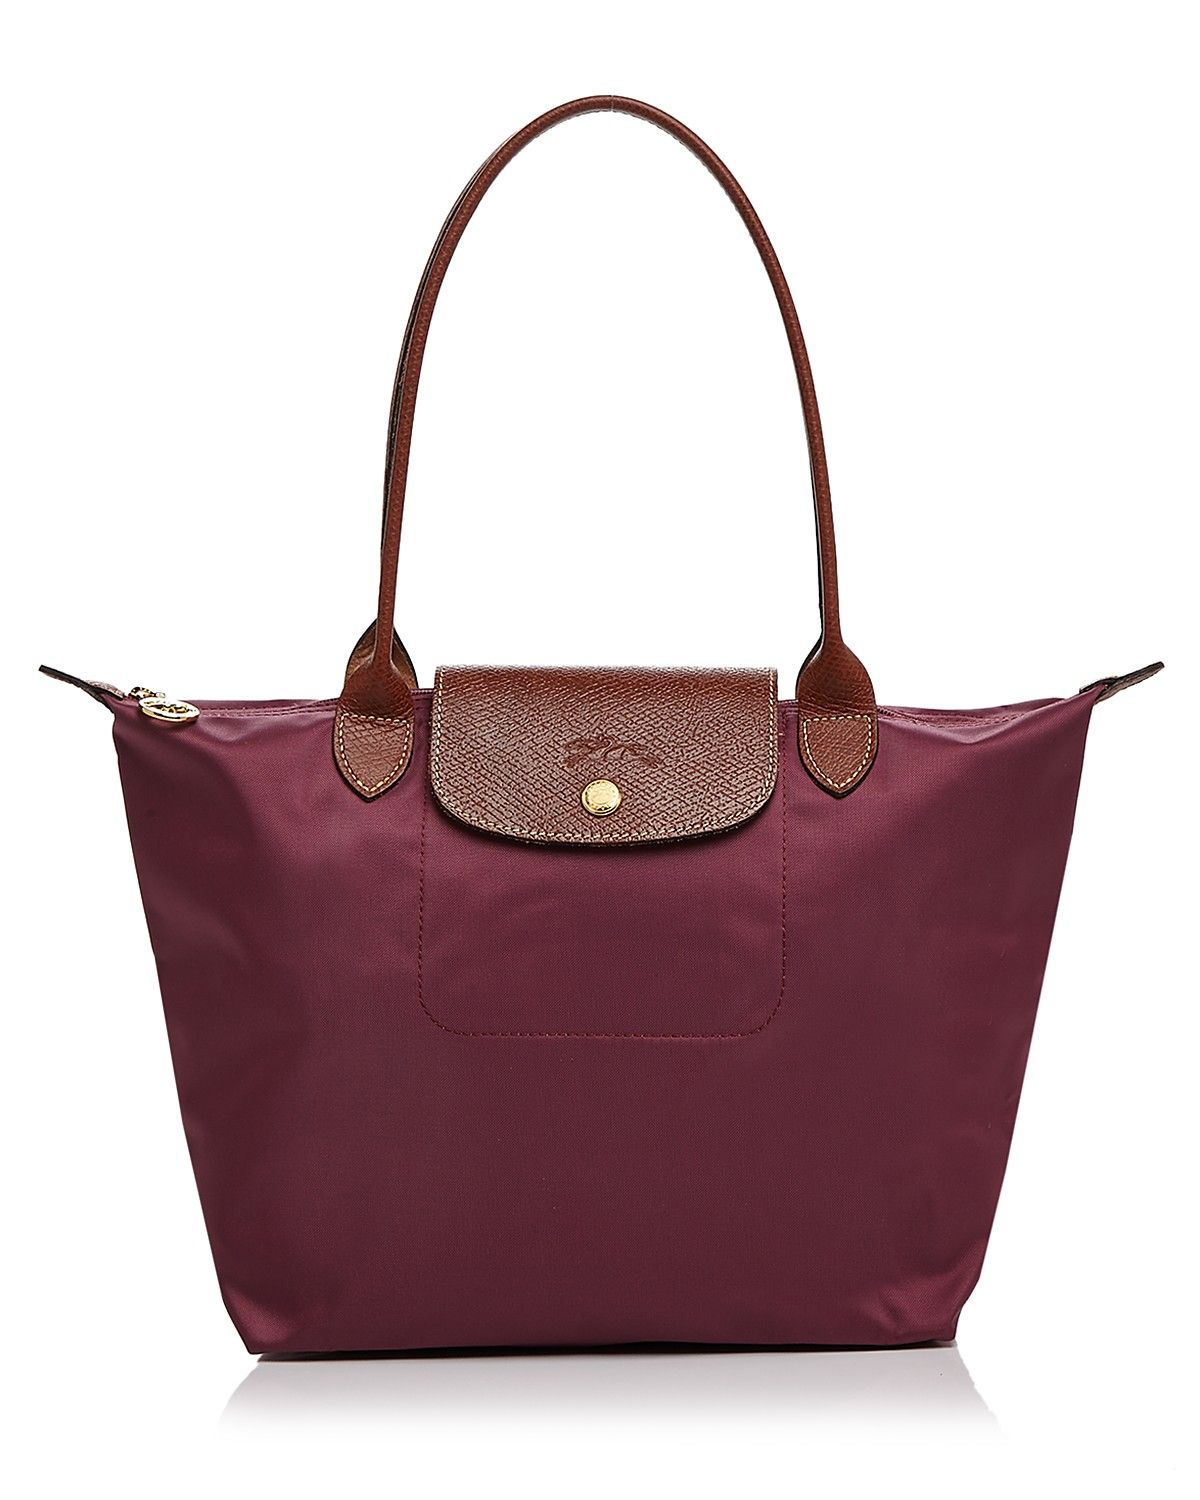 356395ed0 Le Pliage Medium Nylon Tote in 2019 | My style | Longchamp, Tote ...